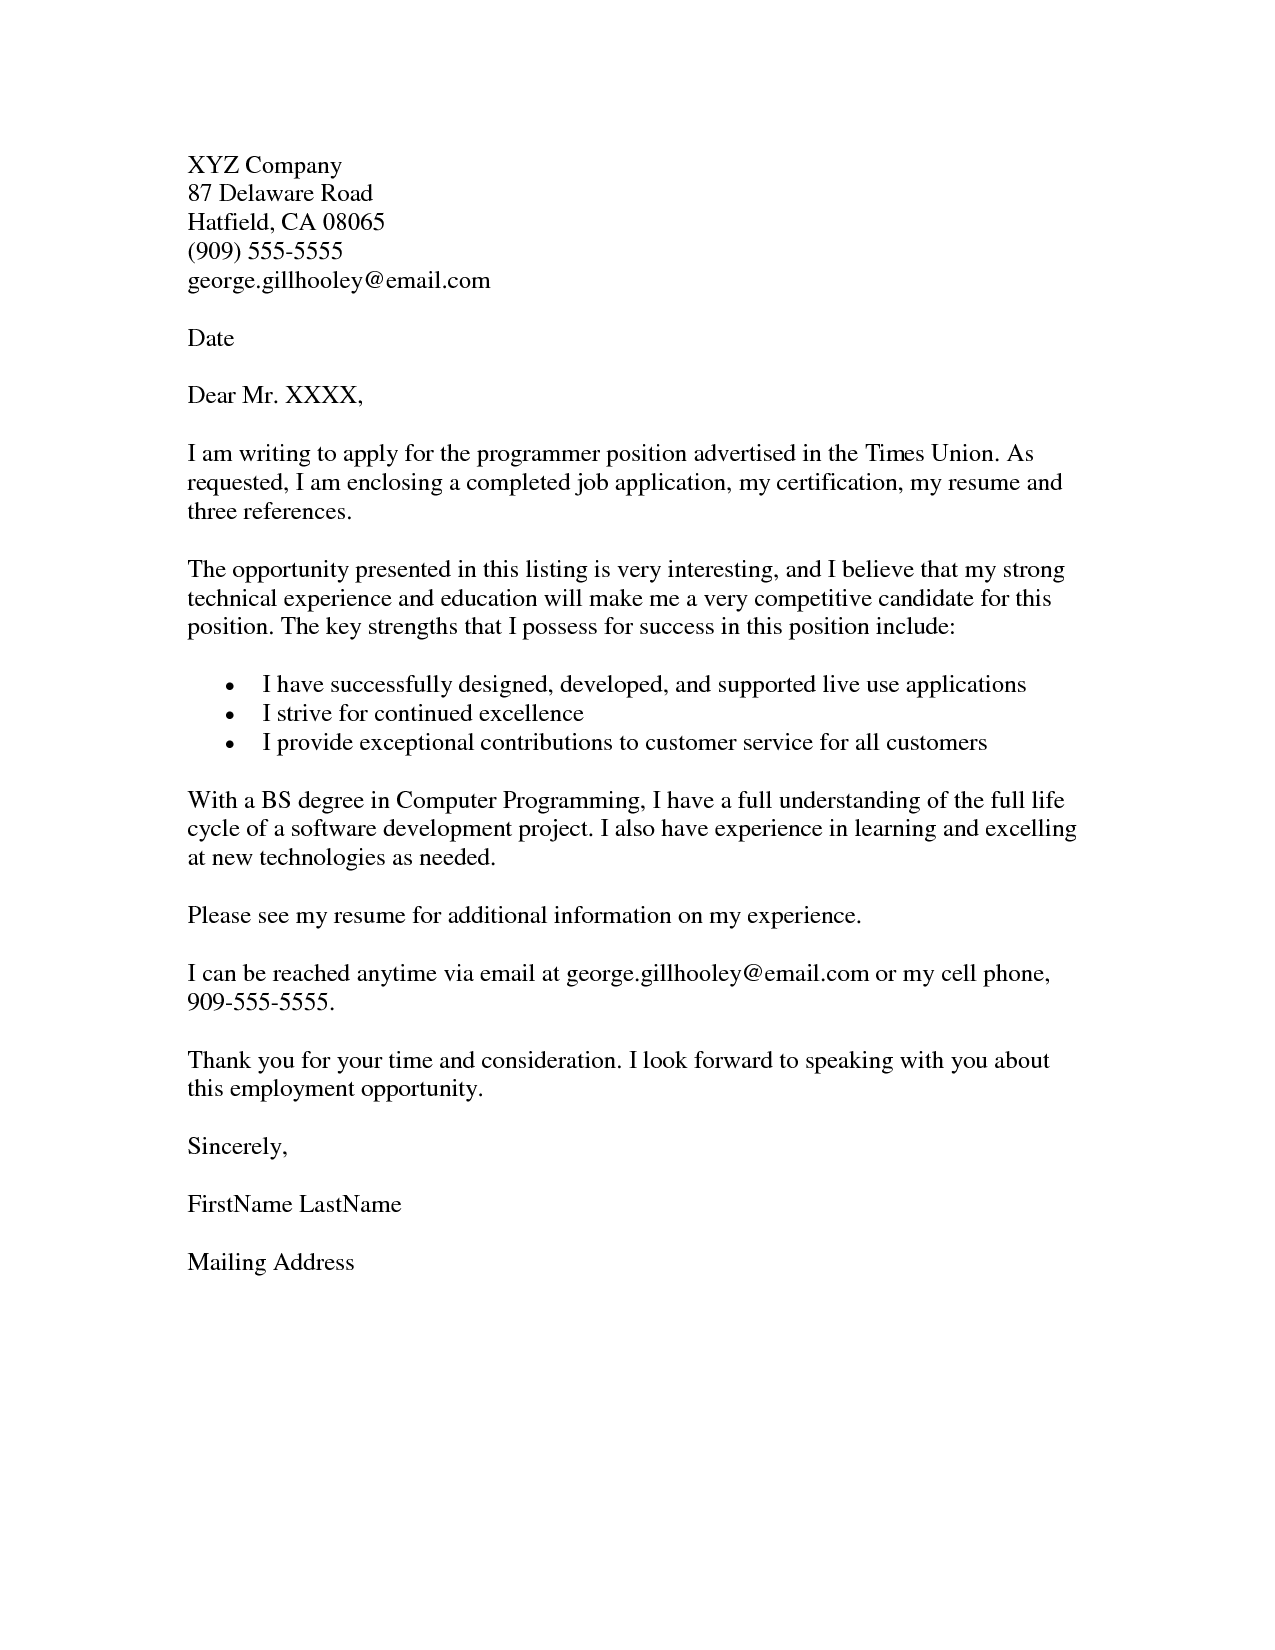 cover letter example for a job application